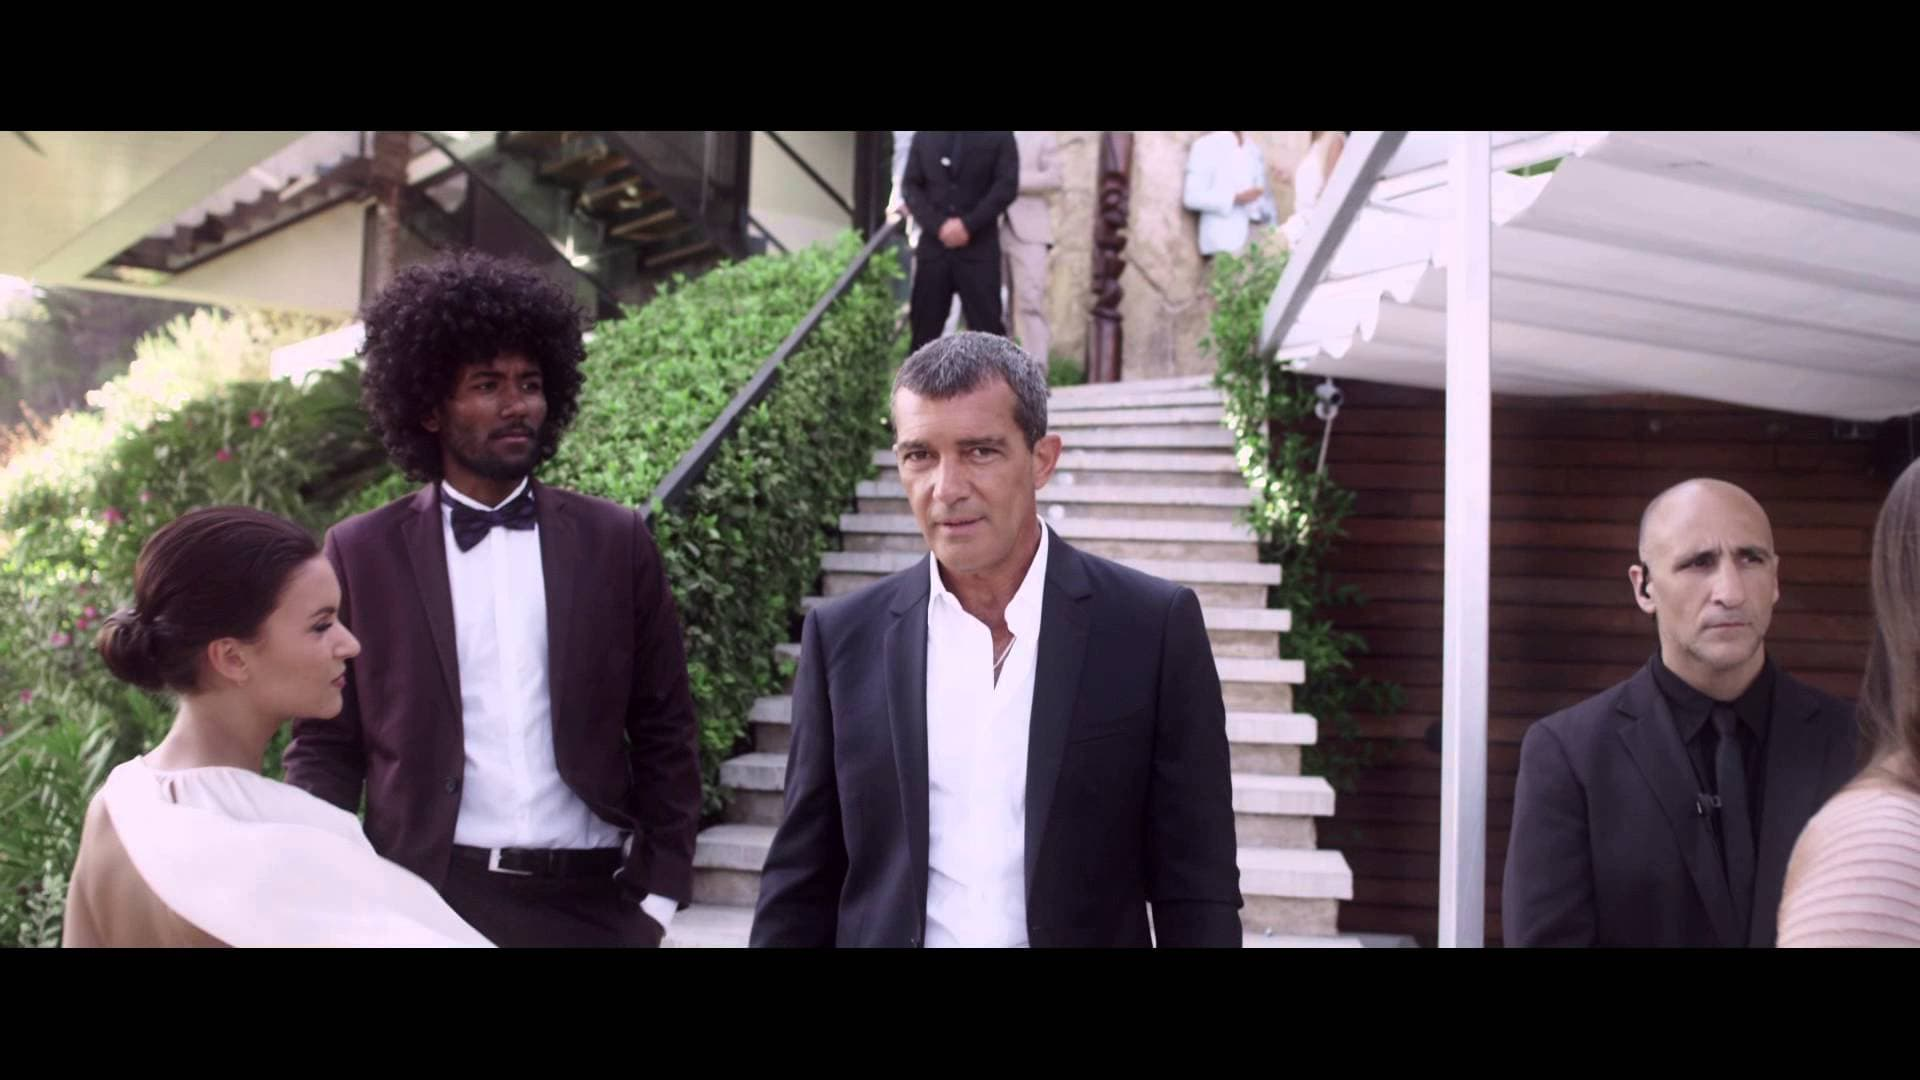 Antonio-Banderas-king-of-seduction-youtube